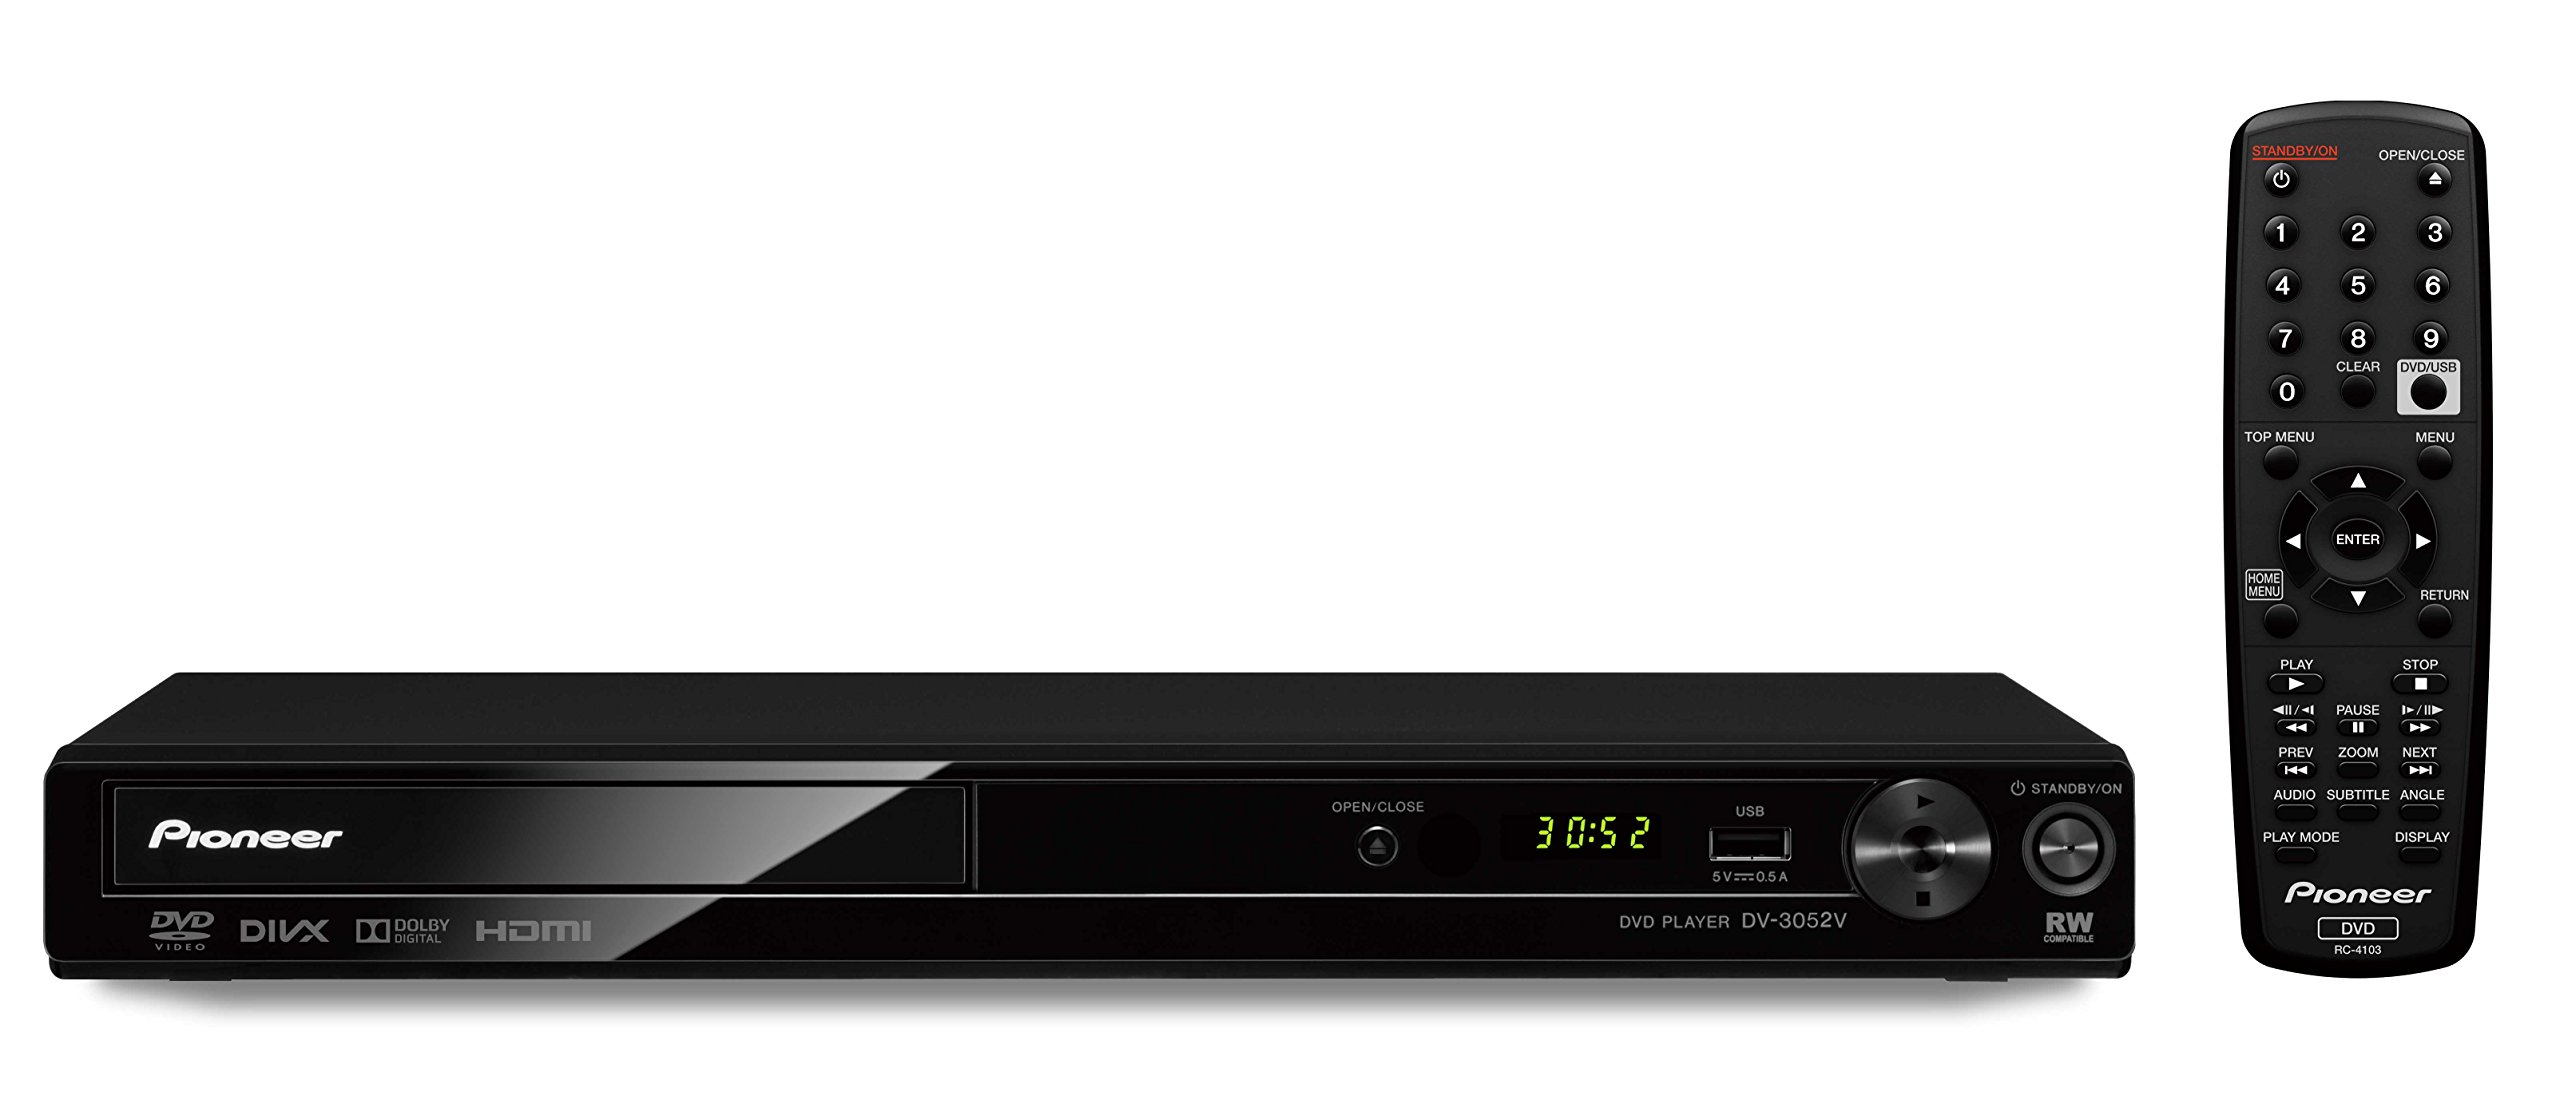 Pioneer DV 3052 System Upscaling Playback